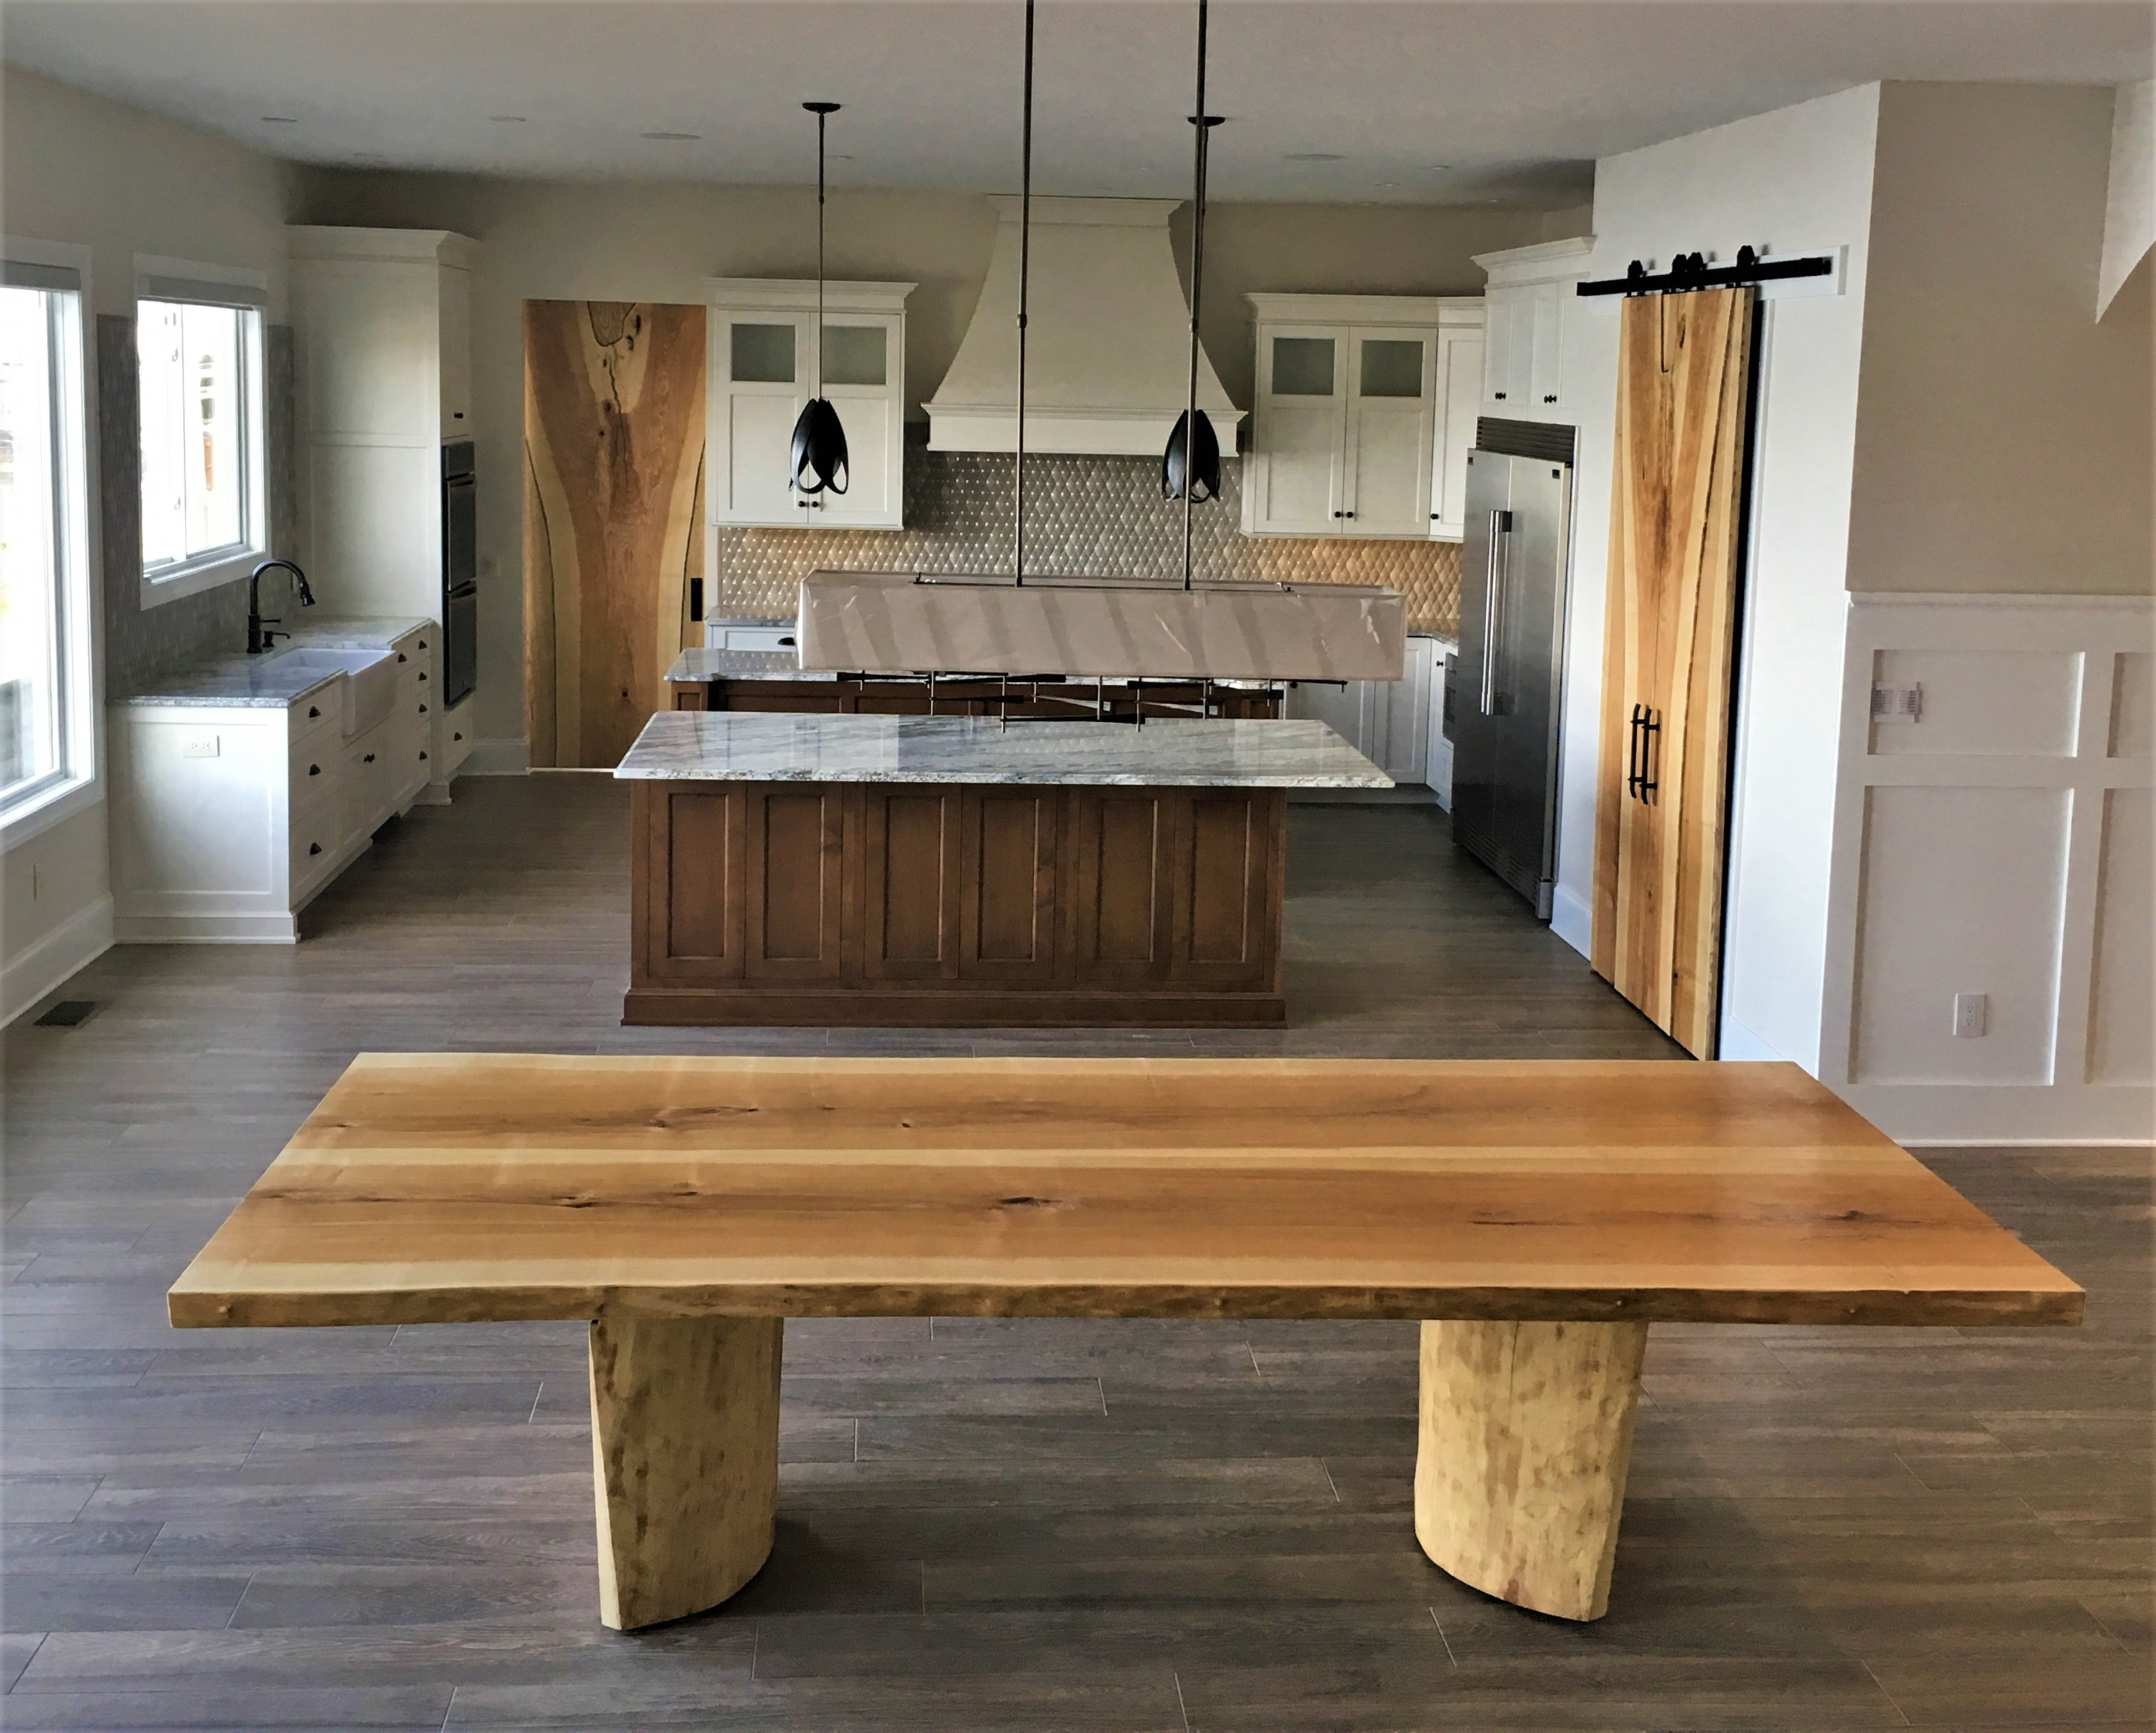 Wondrous Ash Dining Table And Doors Grand Wood Download Free Architecture Designs Rallybritishbridgeorg